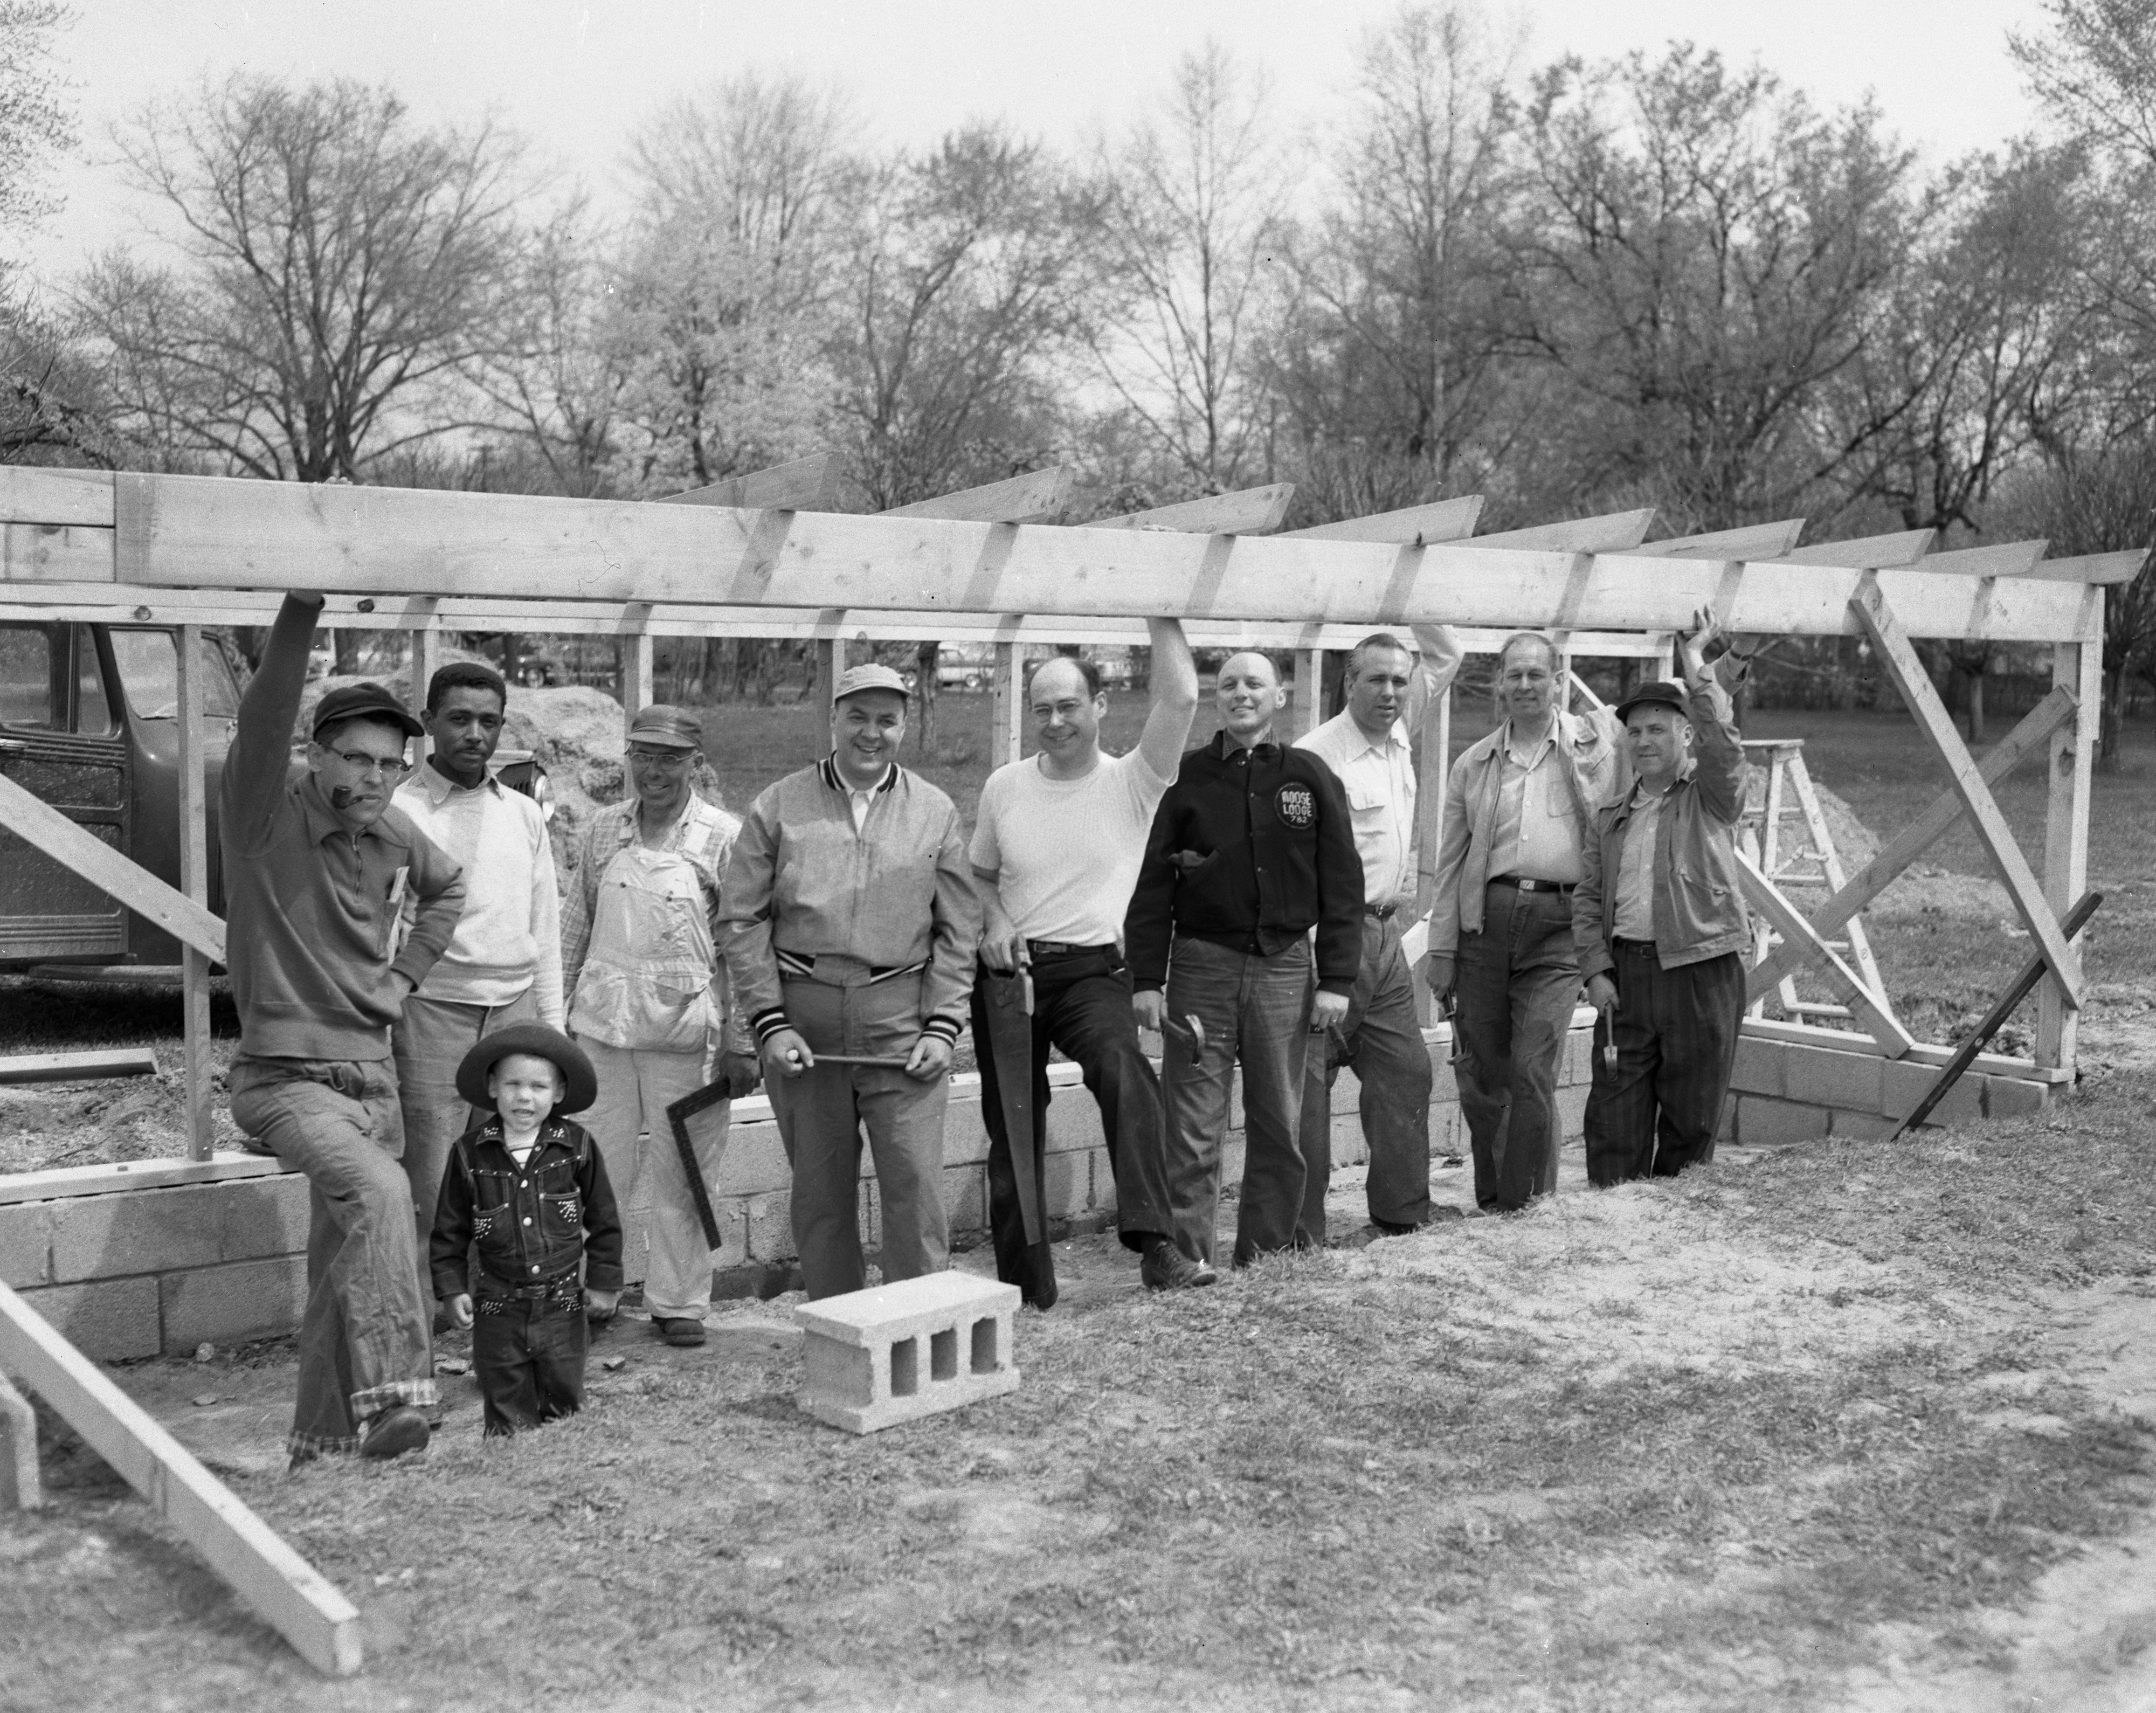 Fathers and managers of the American Little League construct dugouts at the baseball diamond, Recreation Park, Ypsilanti, April 1955 image